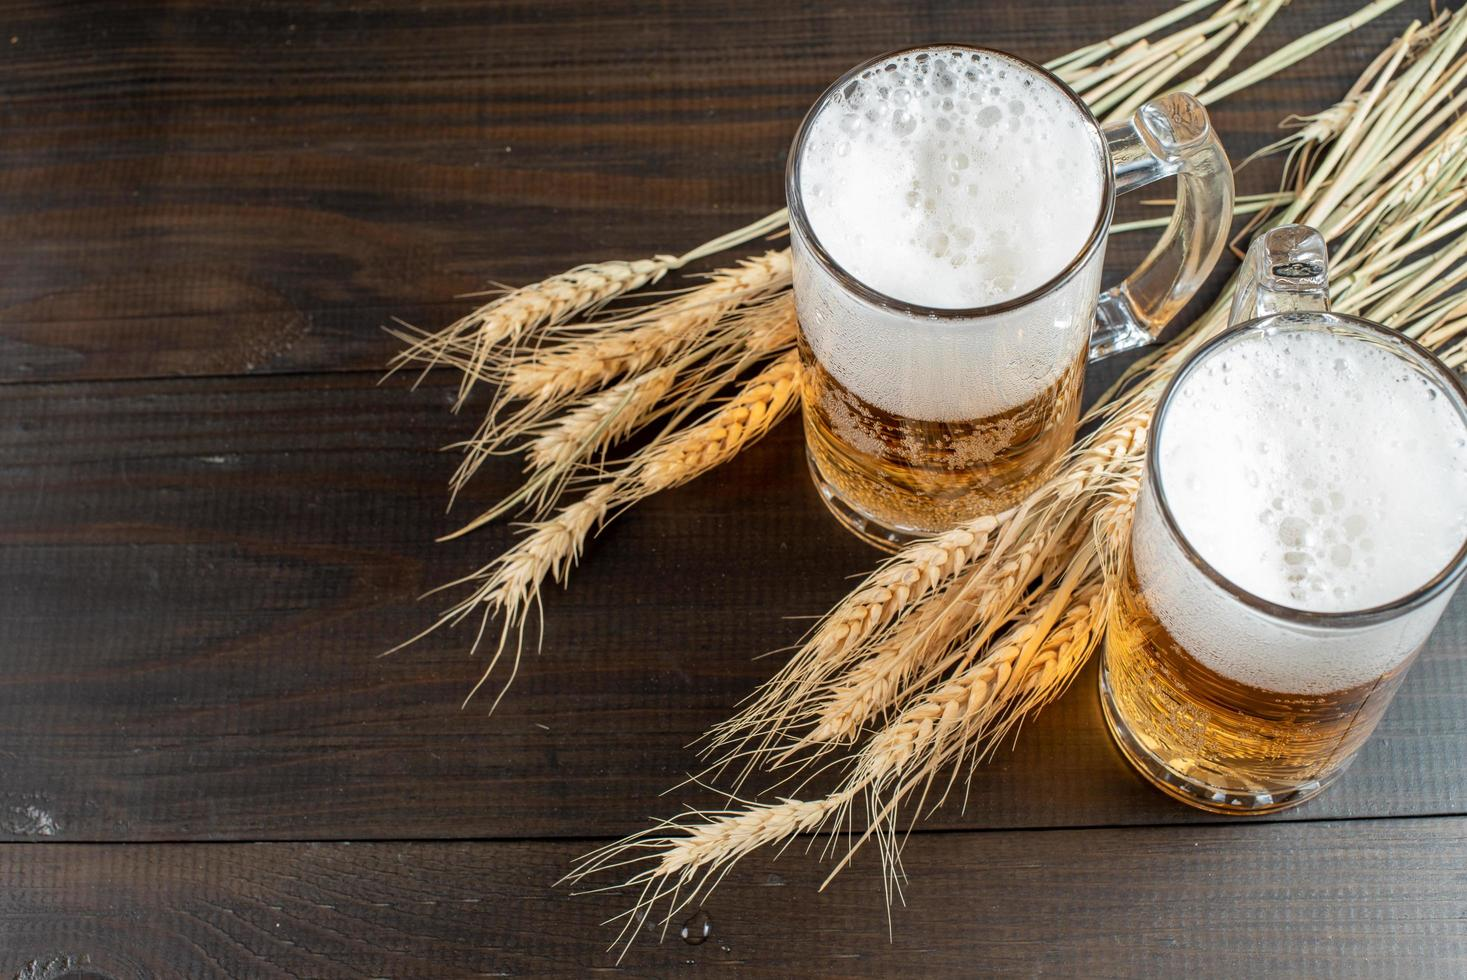 Glasses of beer with wheat stalks photo